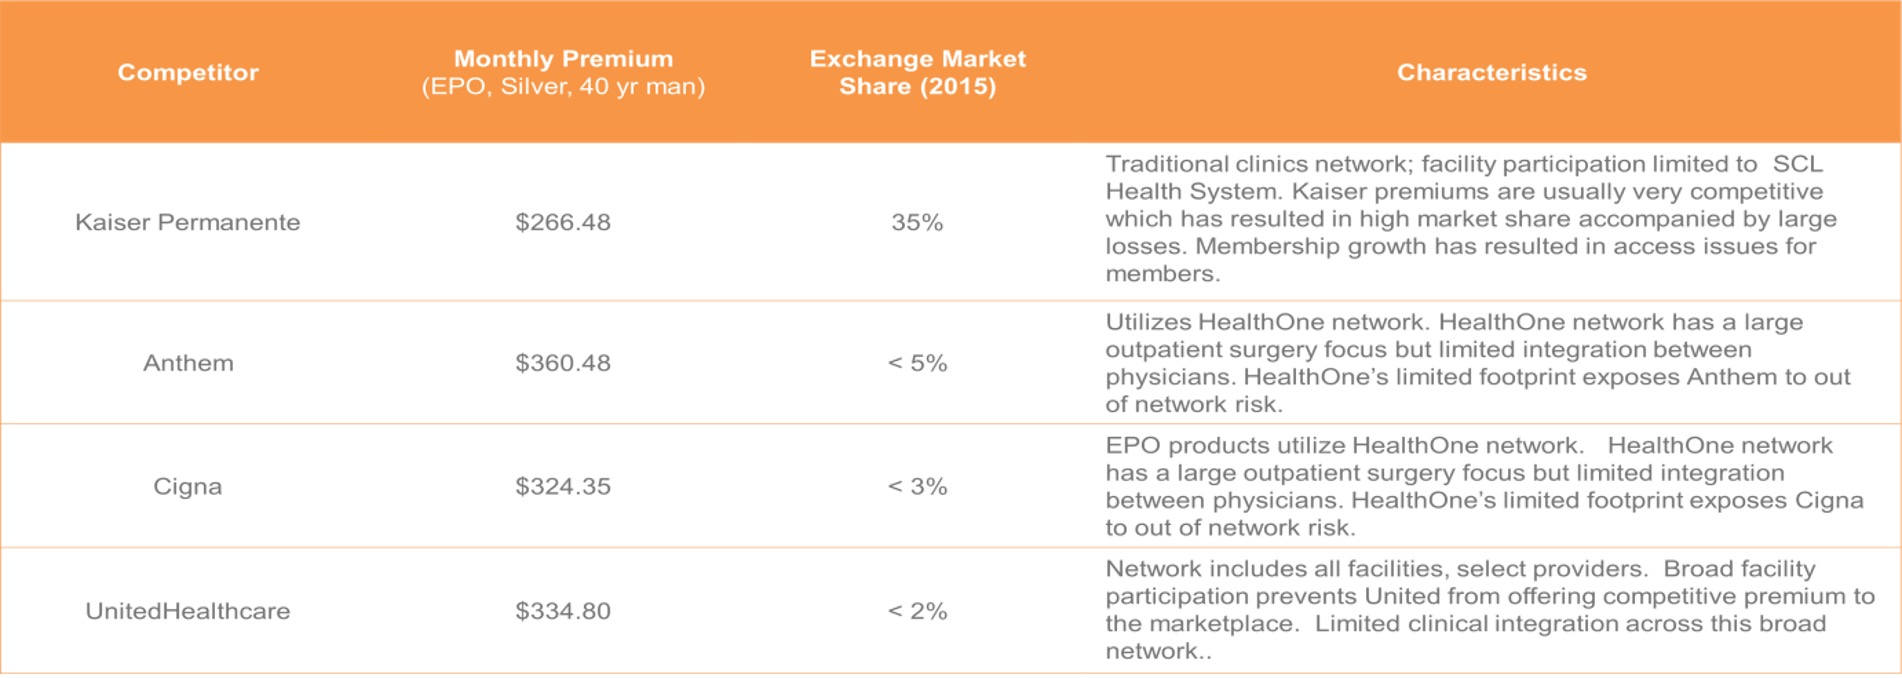 Table of competitors, premiums, exchange markets and characteristics